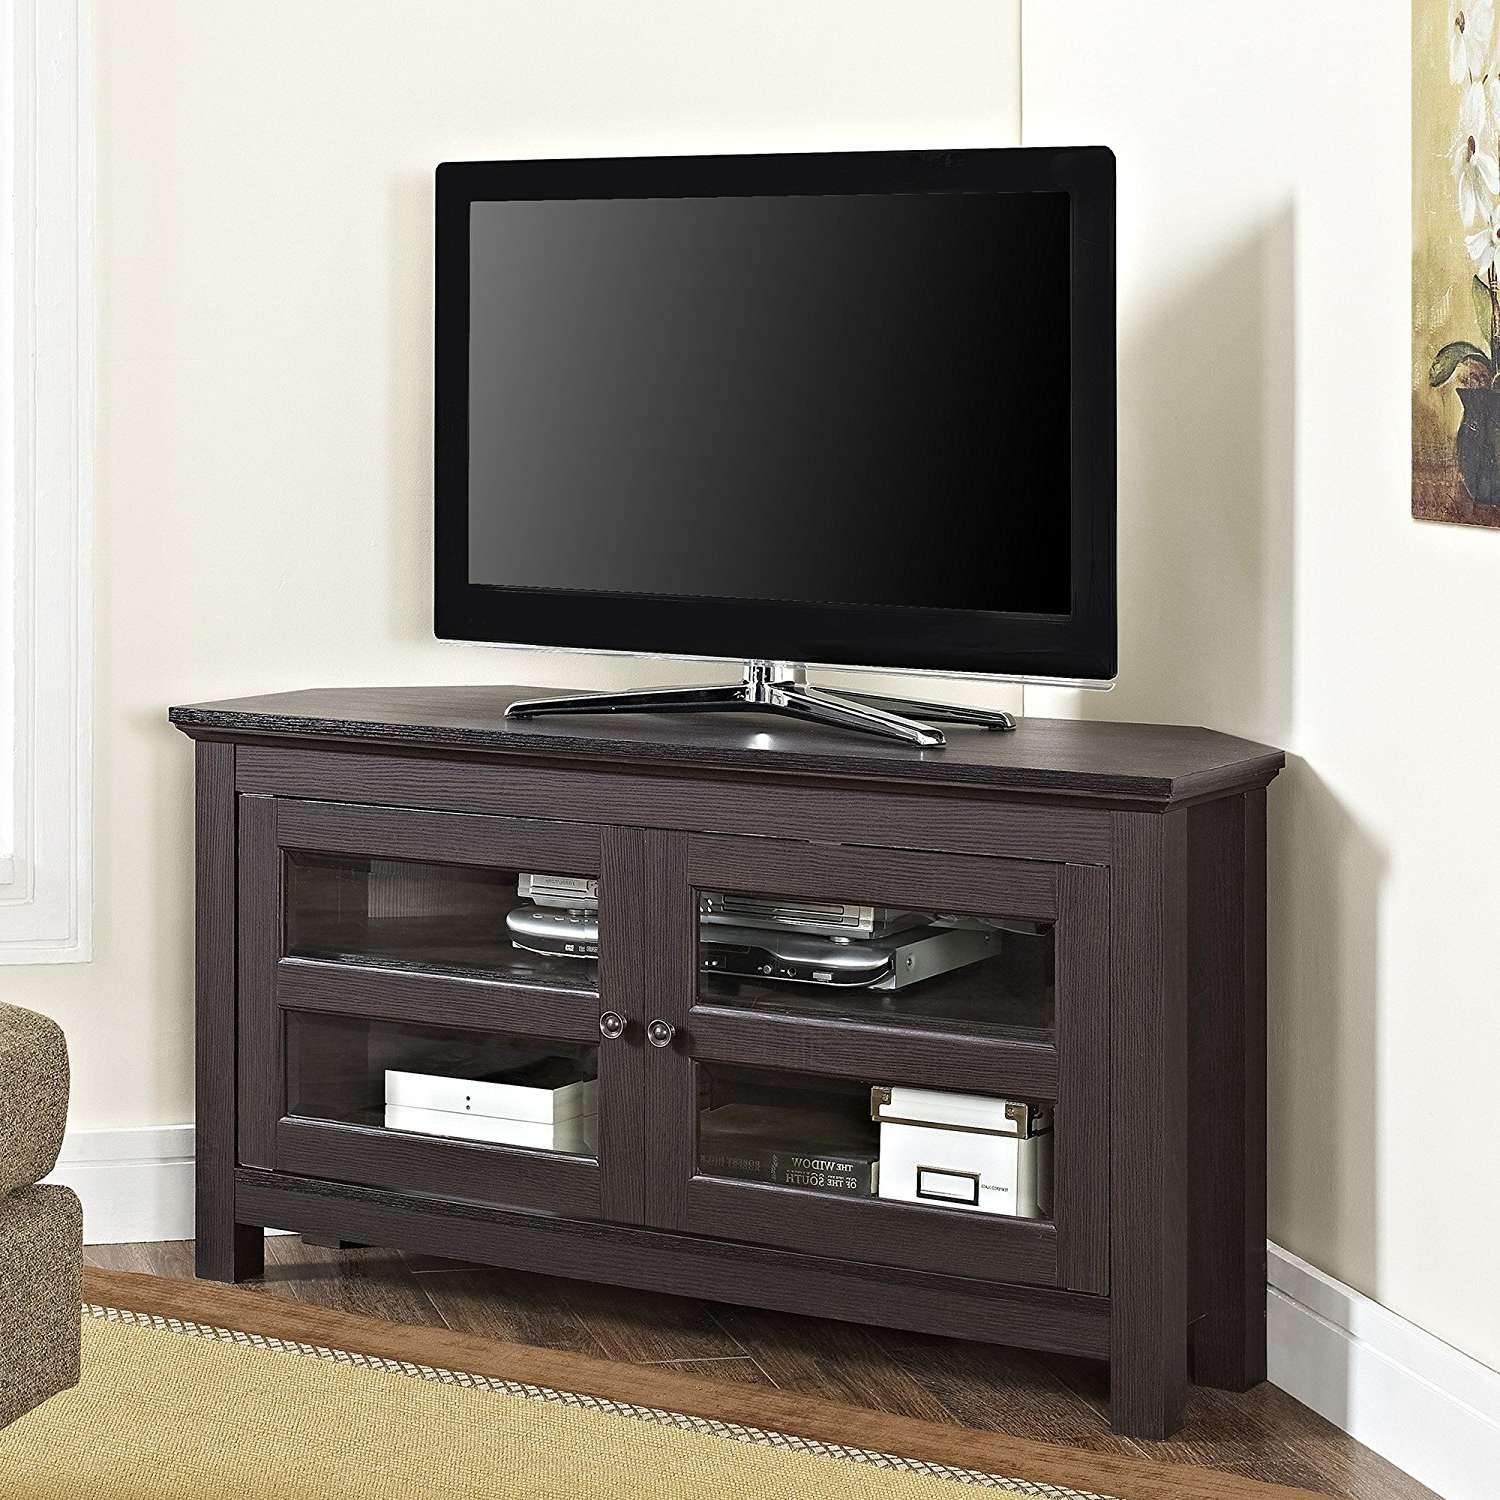 Tv : Suitable Dual Tv Stand Back To Back Finest Dual Tv Stand Uk In Dual Tv Stands (View 15 of 15)